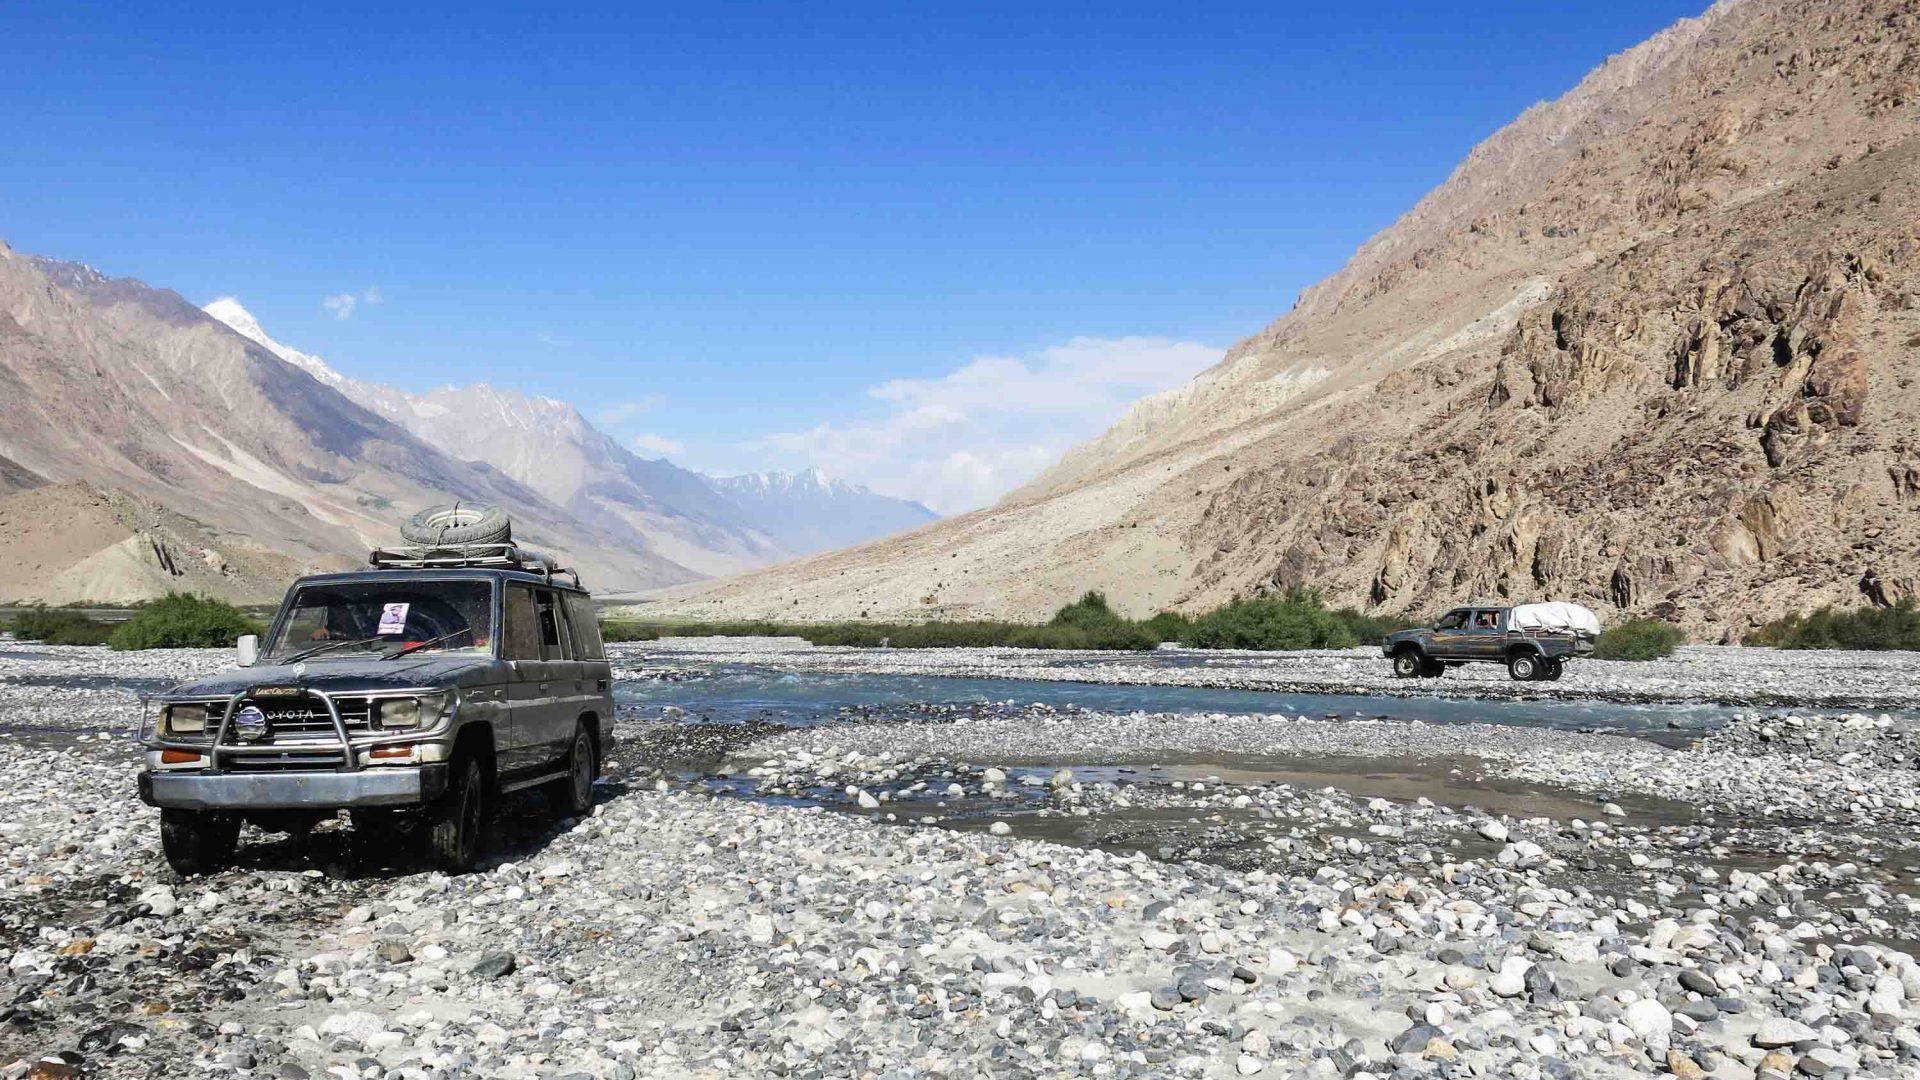 A tourist jeep drives through a river in the Wakhan, Afghanistan.